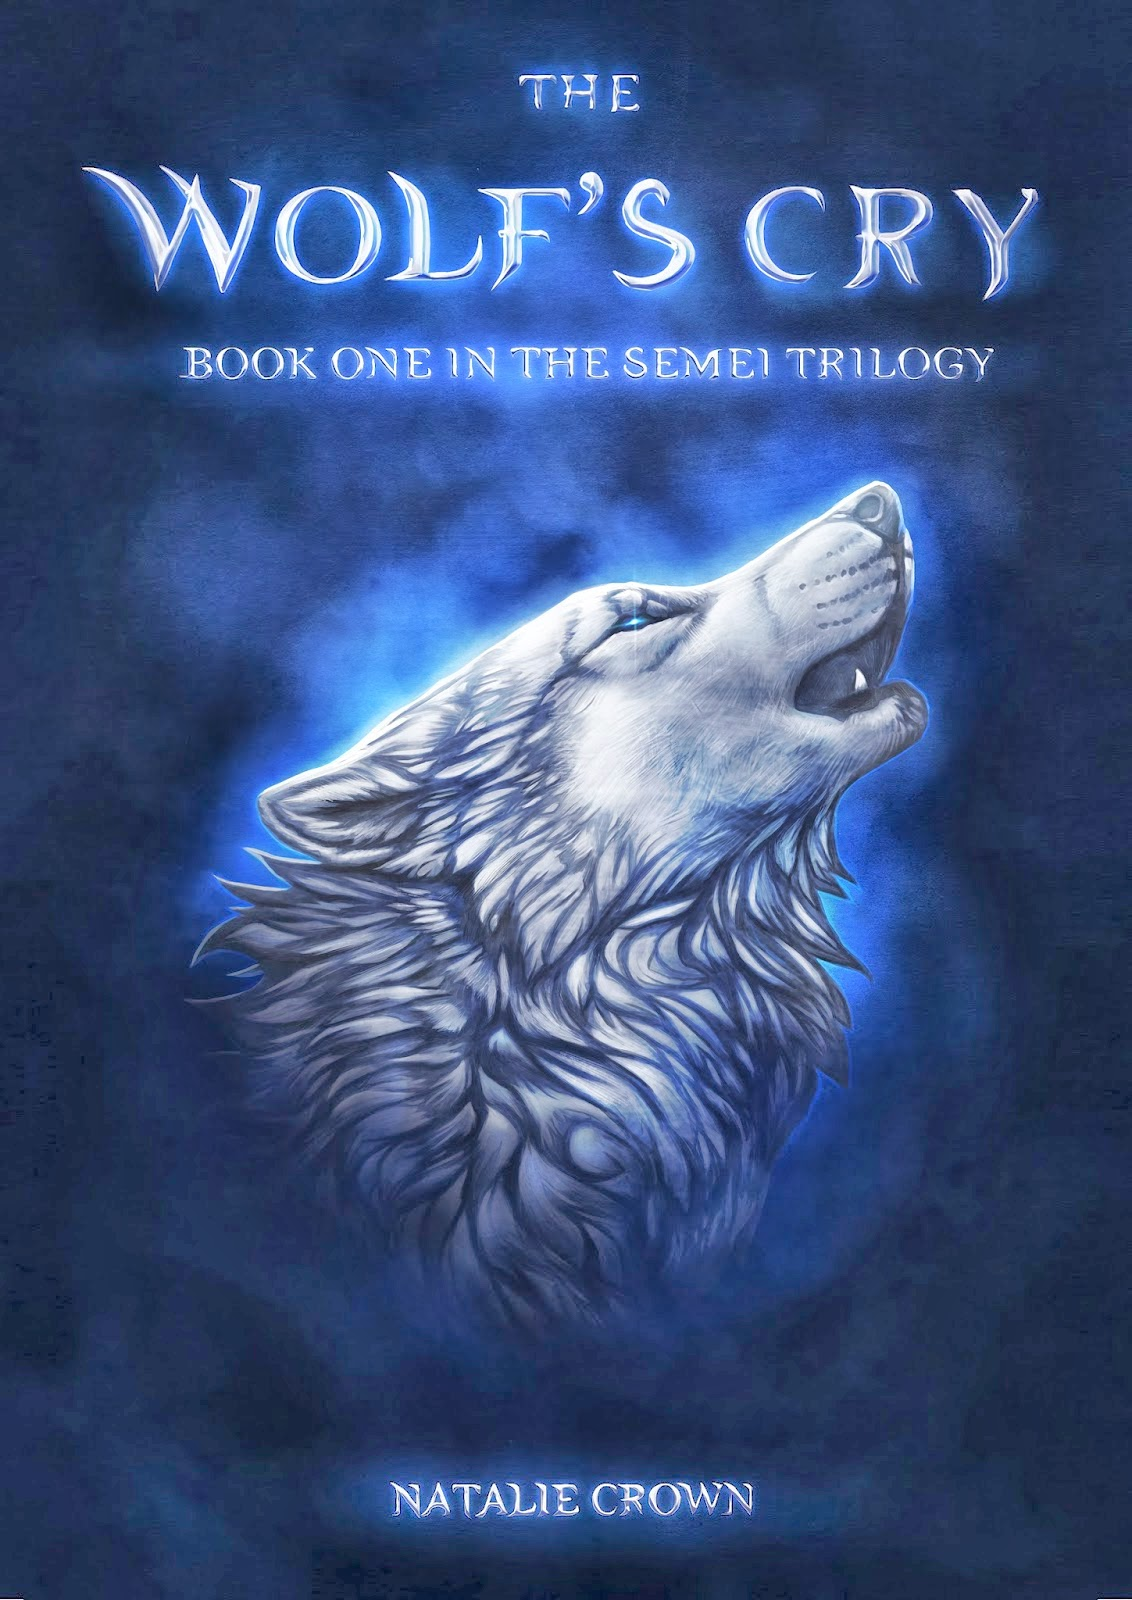 http://cover2coverblog.blogspot.com/2014/03/blog-tour-review-giveaway-wolfs-cry-by.html